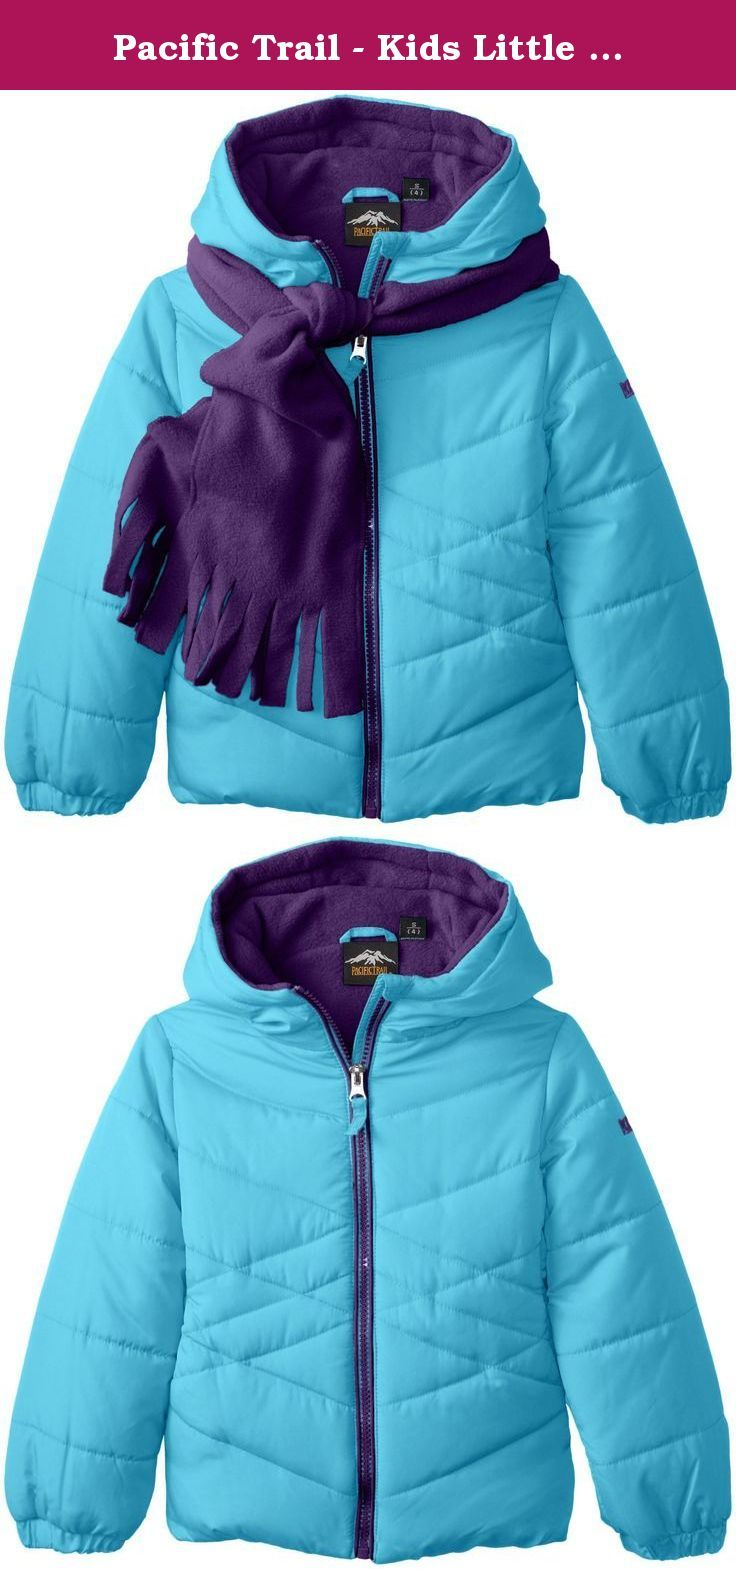 Pacific Trail Kids Little Girls Solid Puffer Coat With